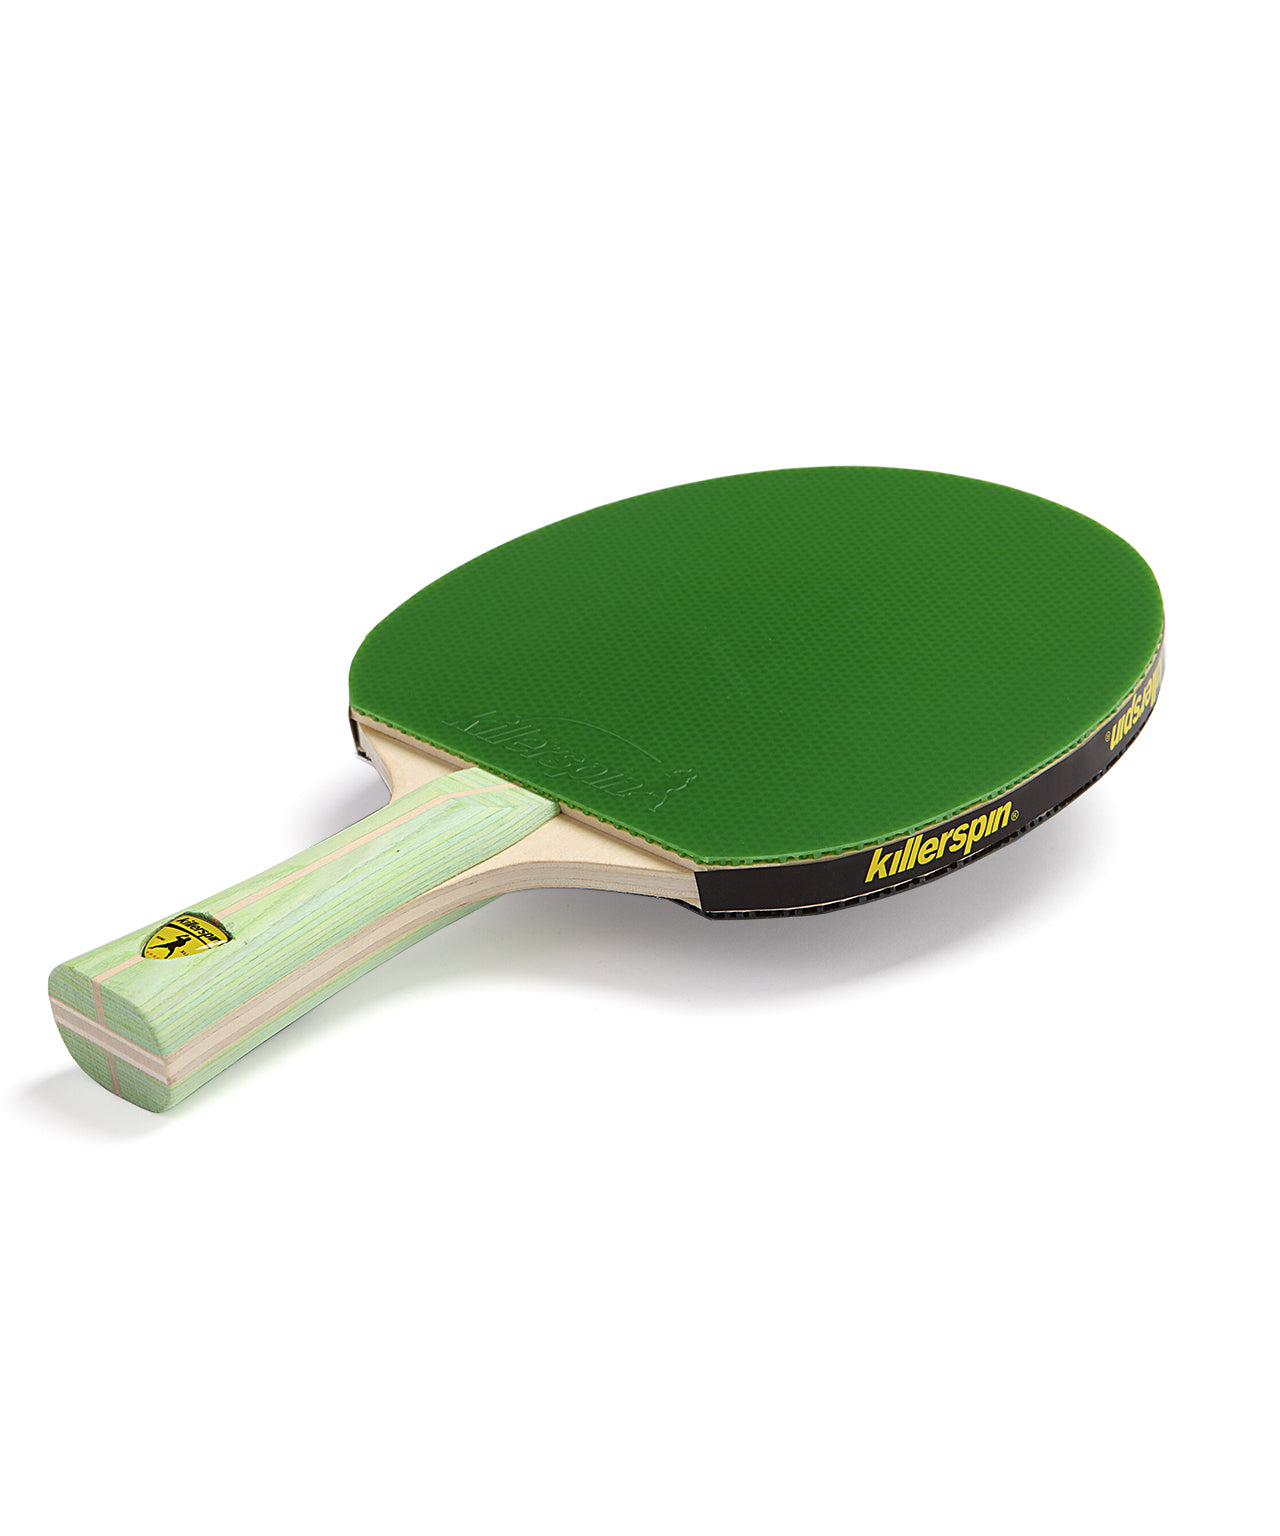 Killerspin Ping Pong Paddle Jet200 Lime - Green Rubber